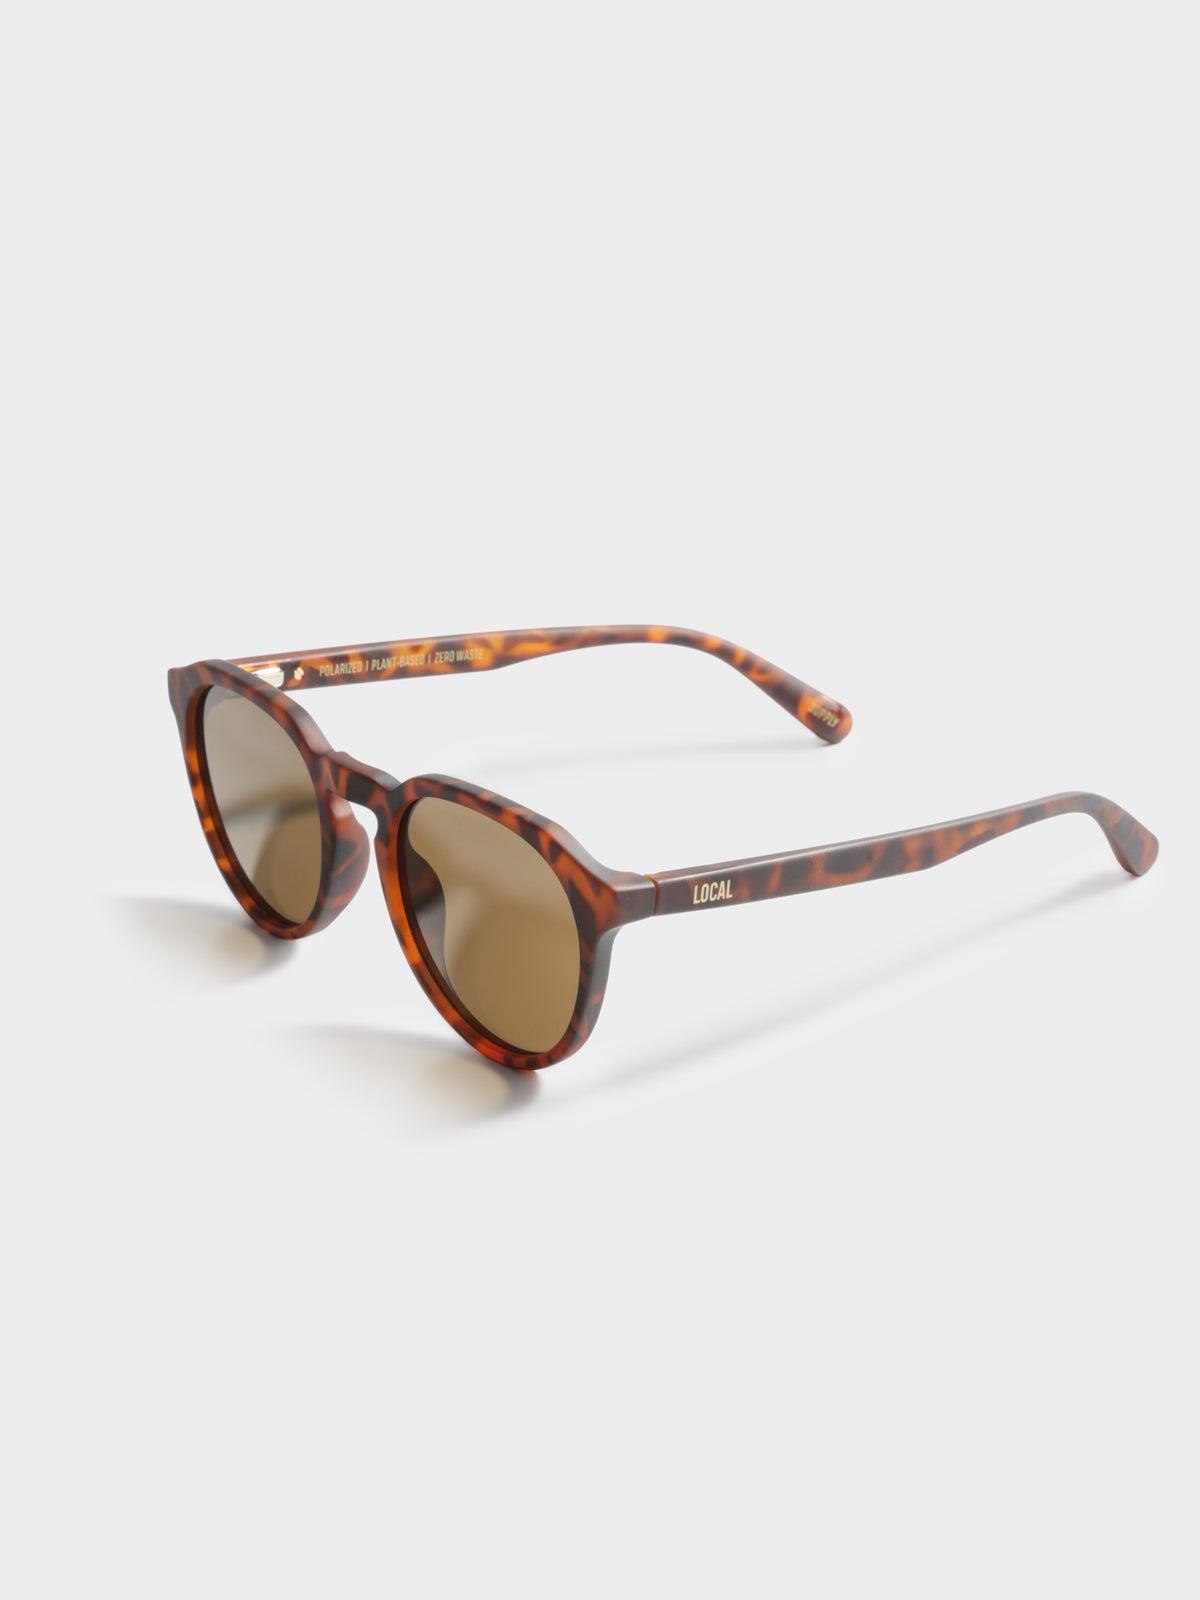 TYO Polarised Sunglasses in Matte Tortoiseshell & Dark Brown